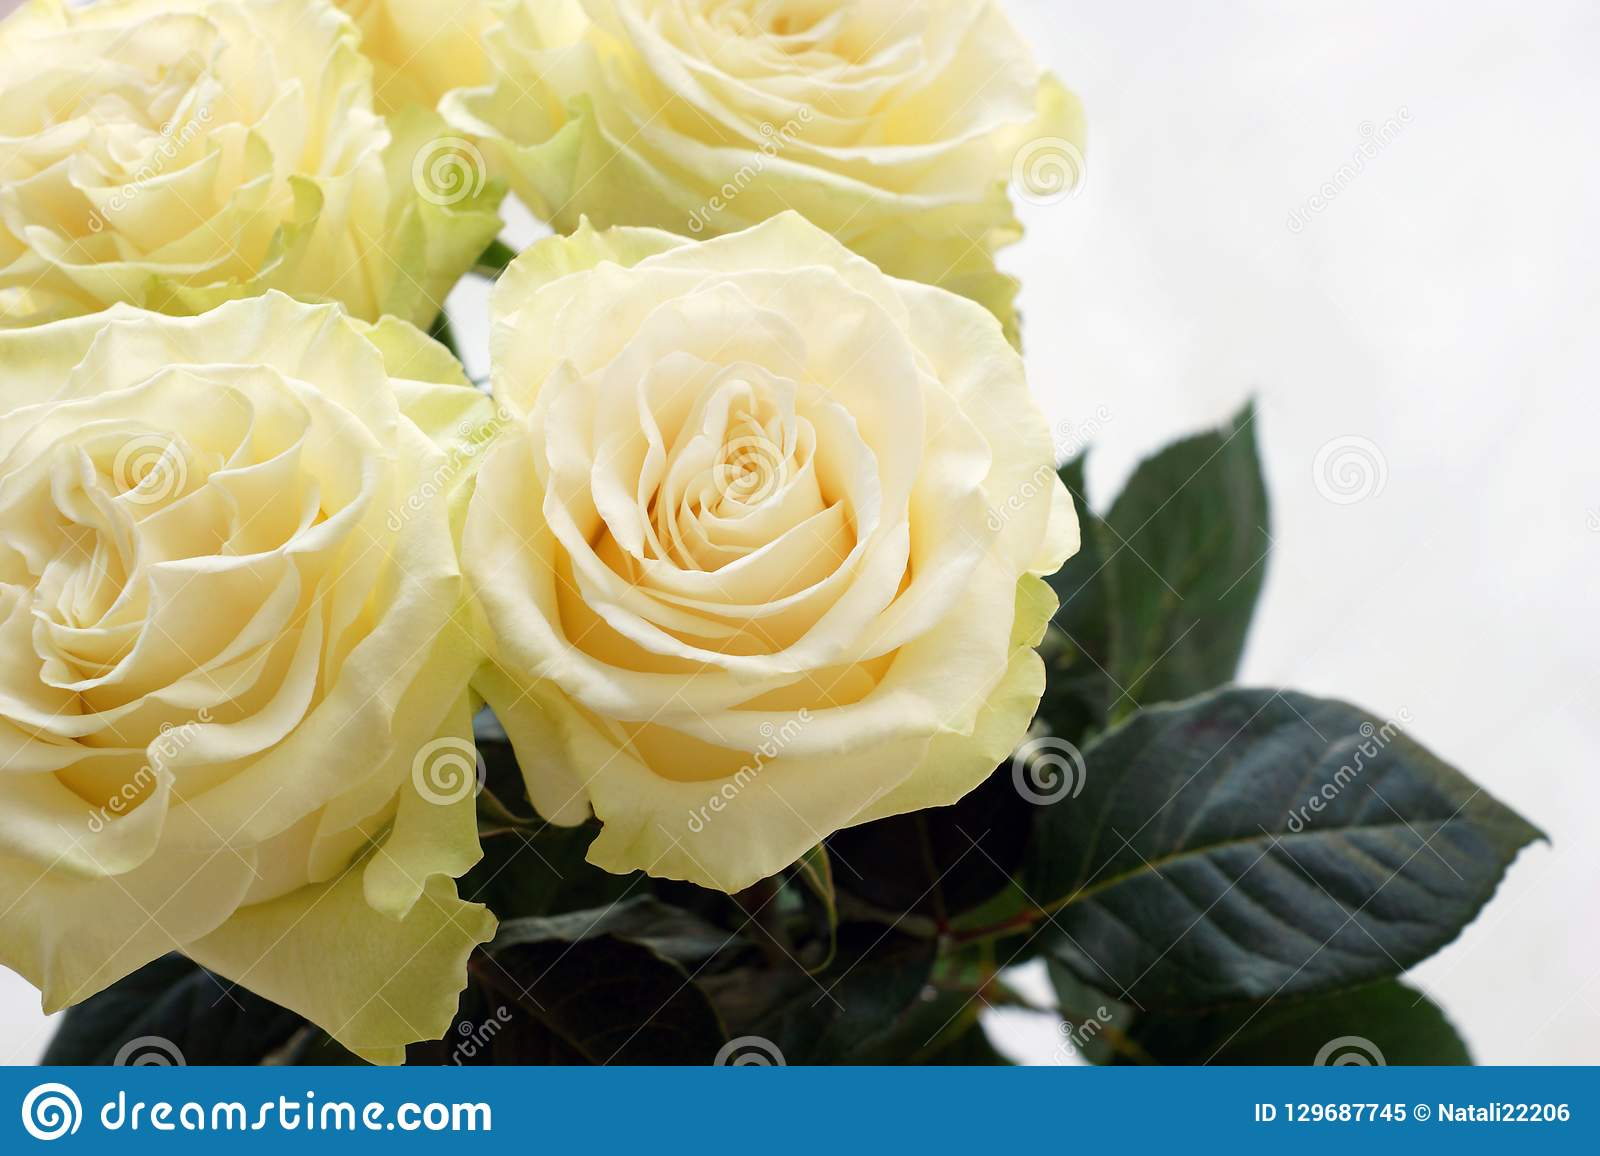 Four beautiful creamy roses in a bouquet close-up.